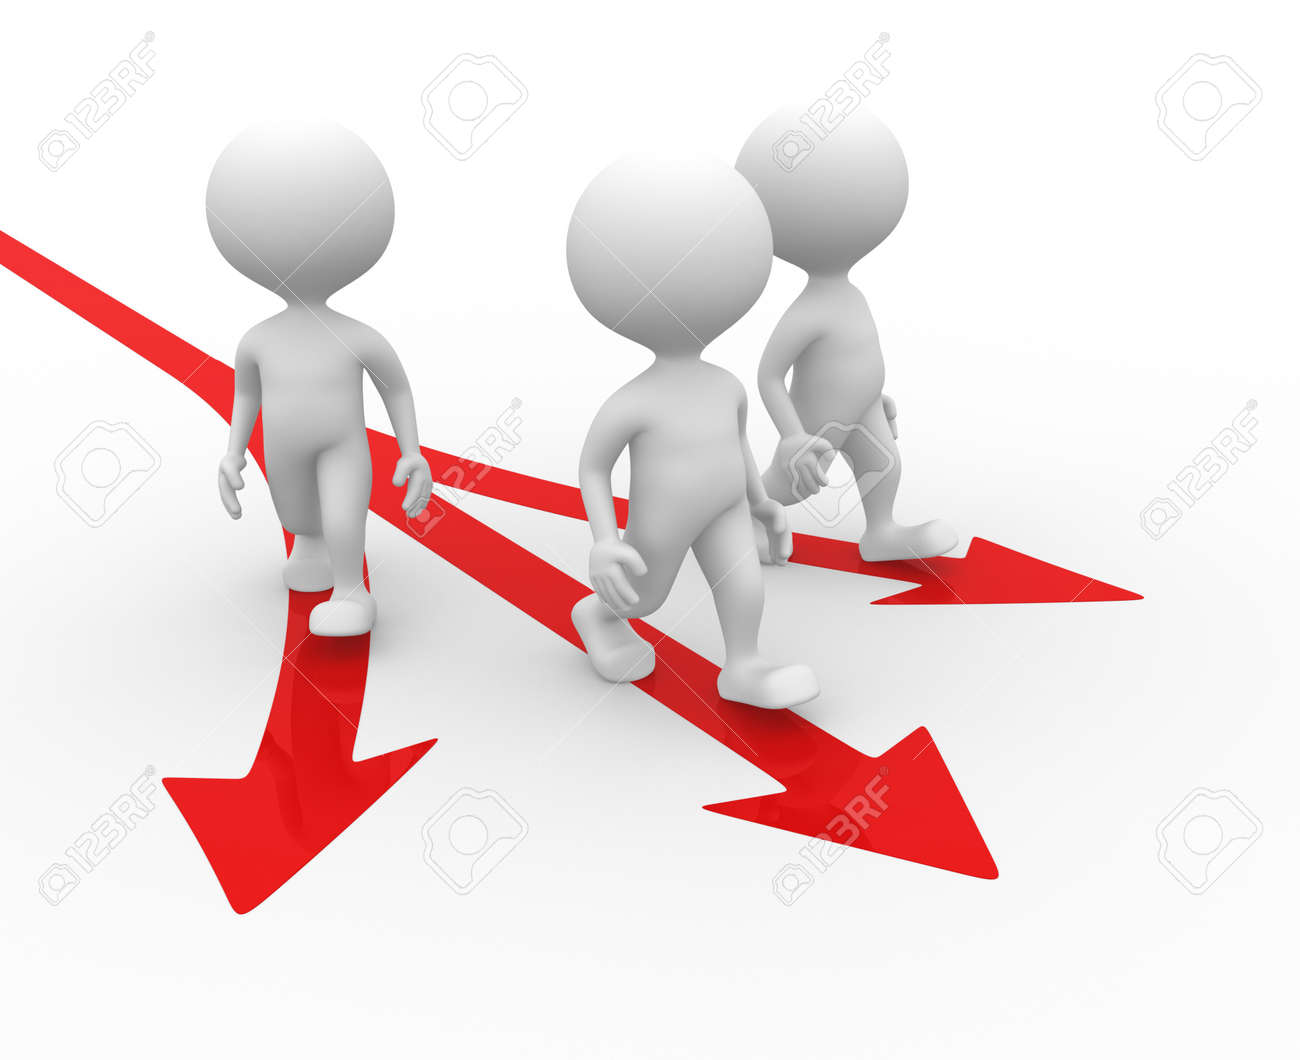 3d people - man, person and directional sign. Arrow Stock Photo - 21138672